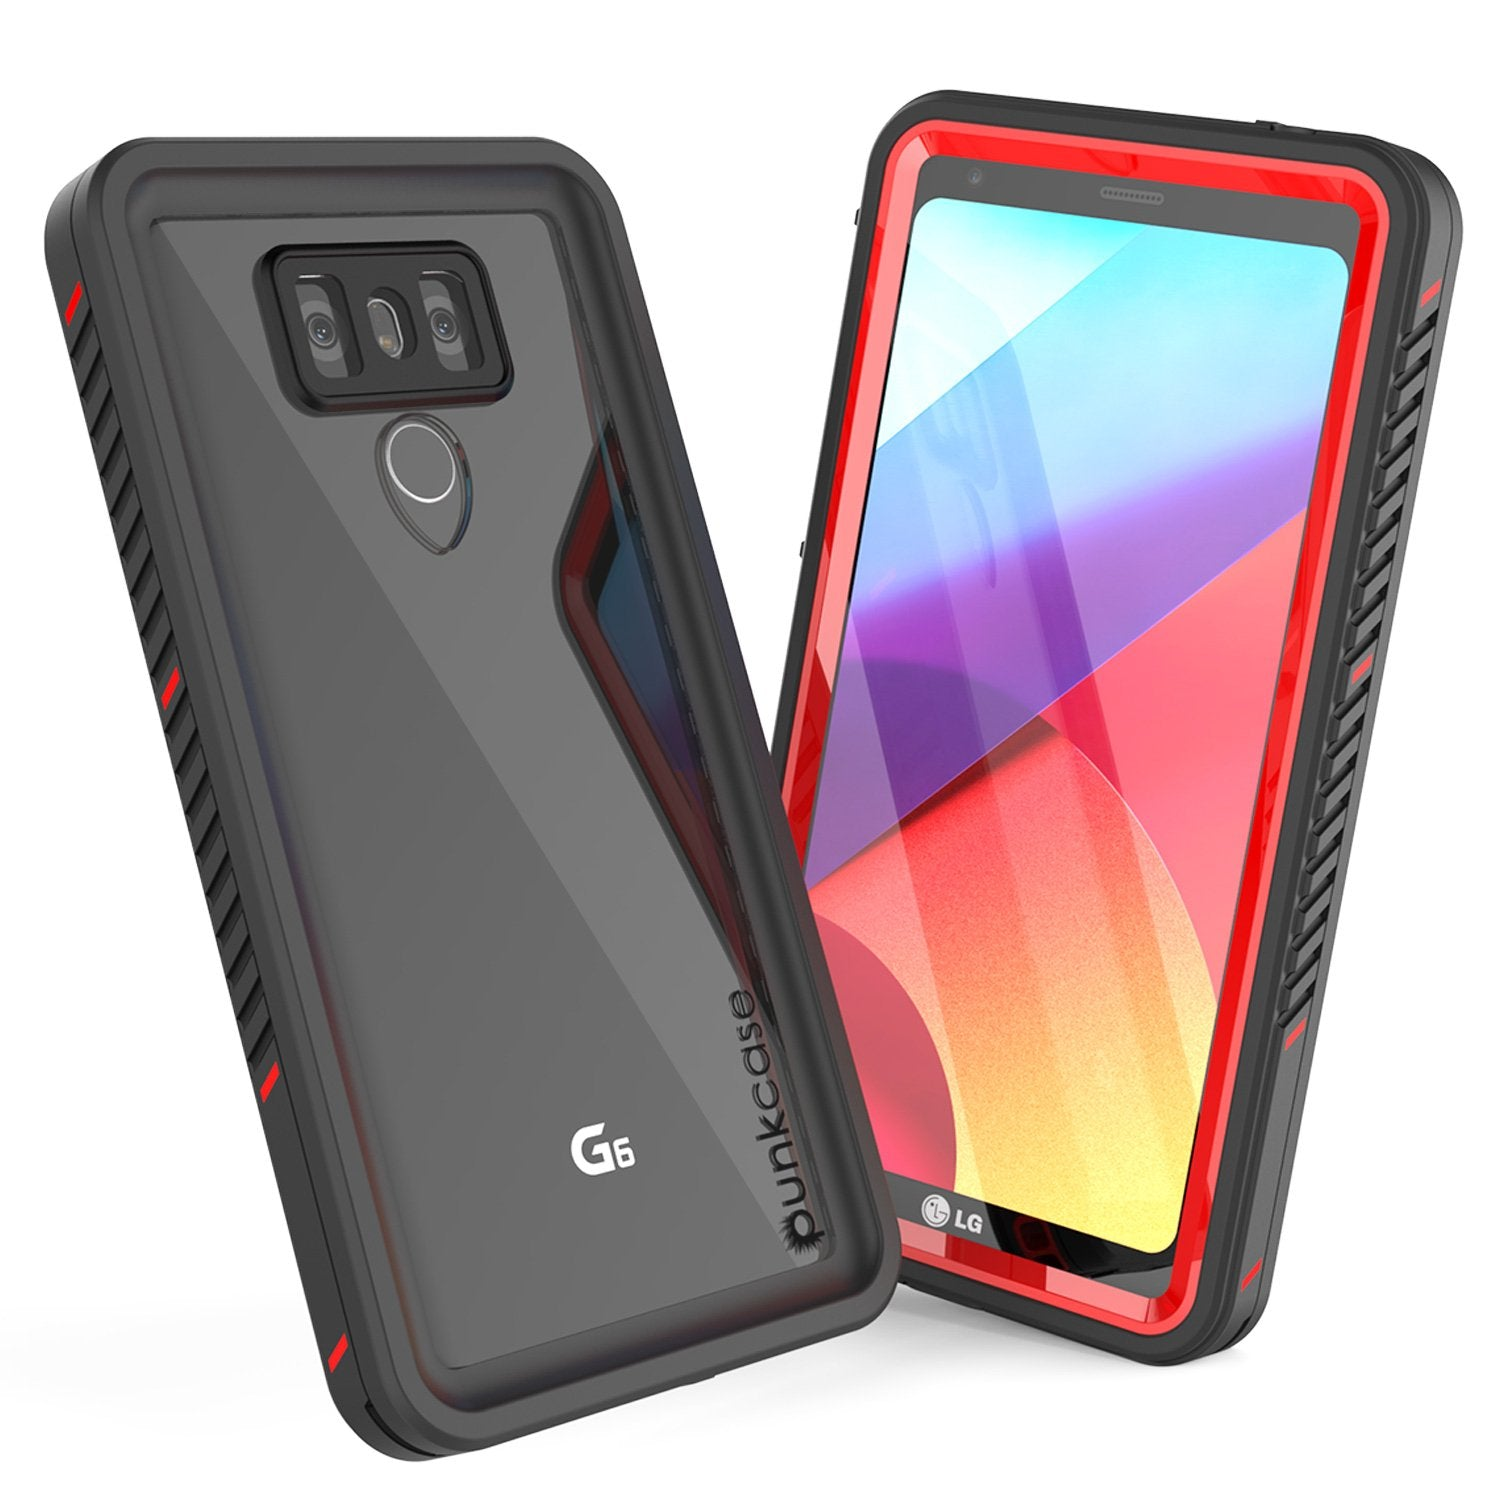 LG G6 Waterproof Case, Punkcase Extreme Series Slim Fit [Red]